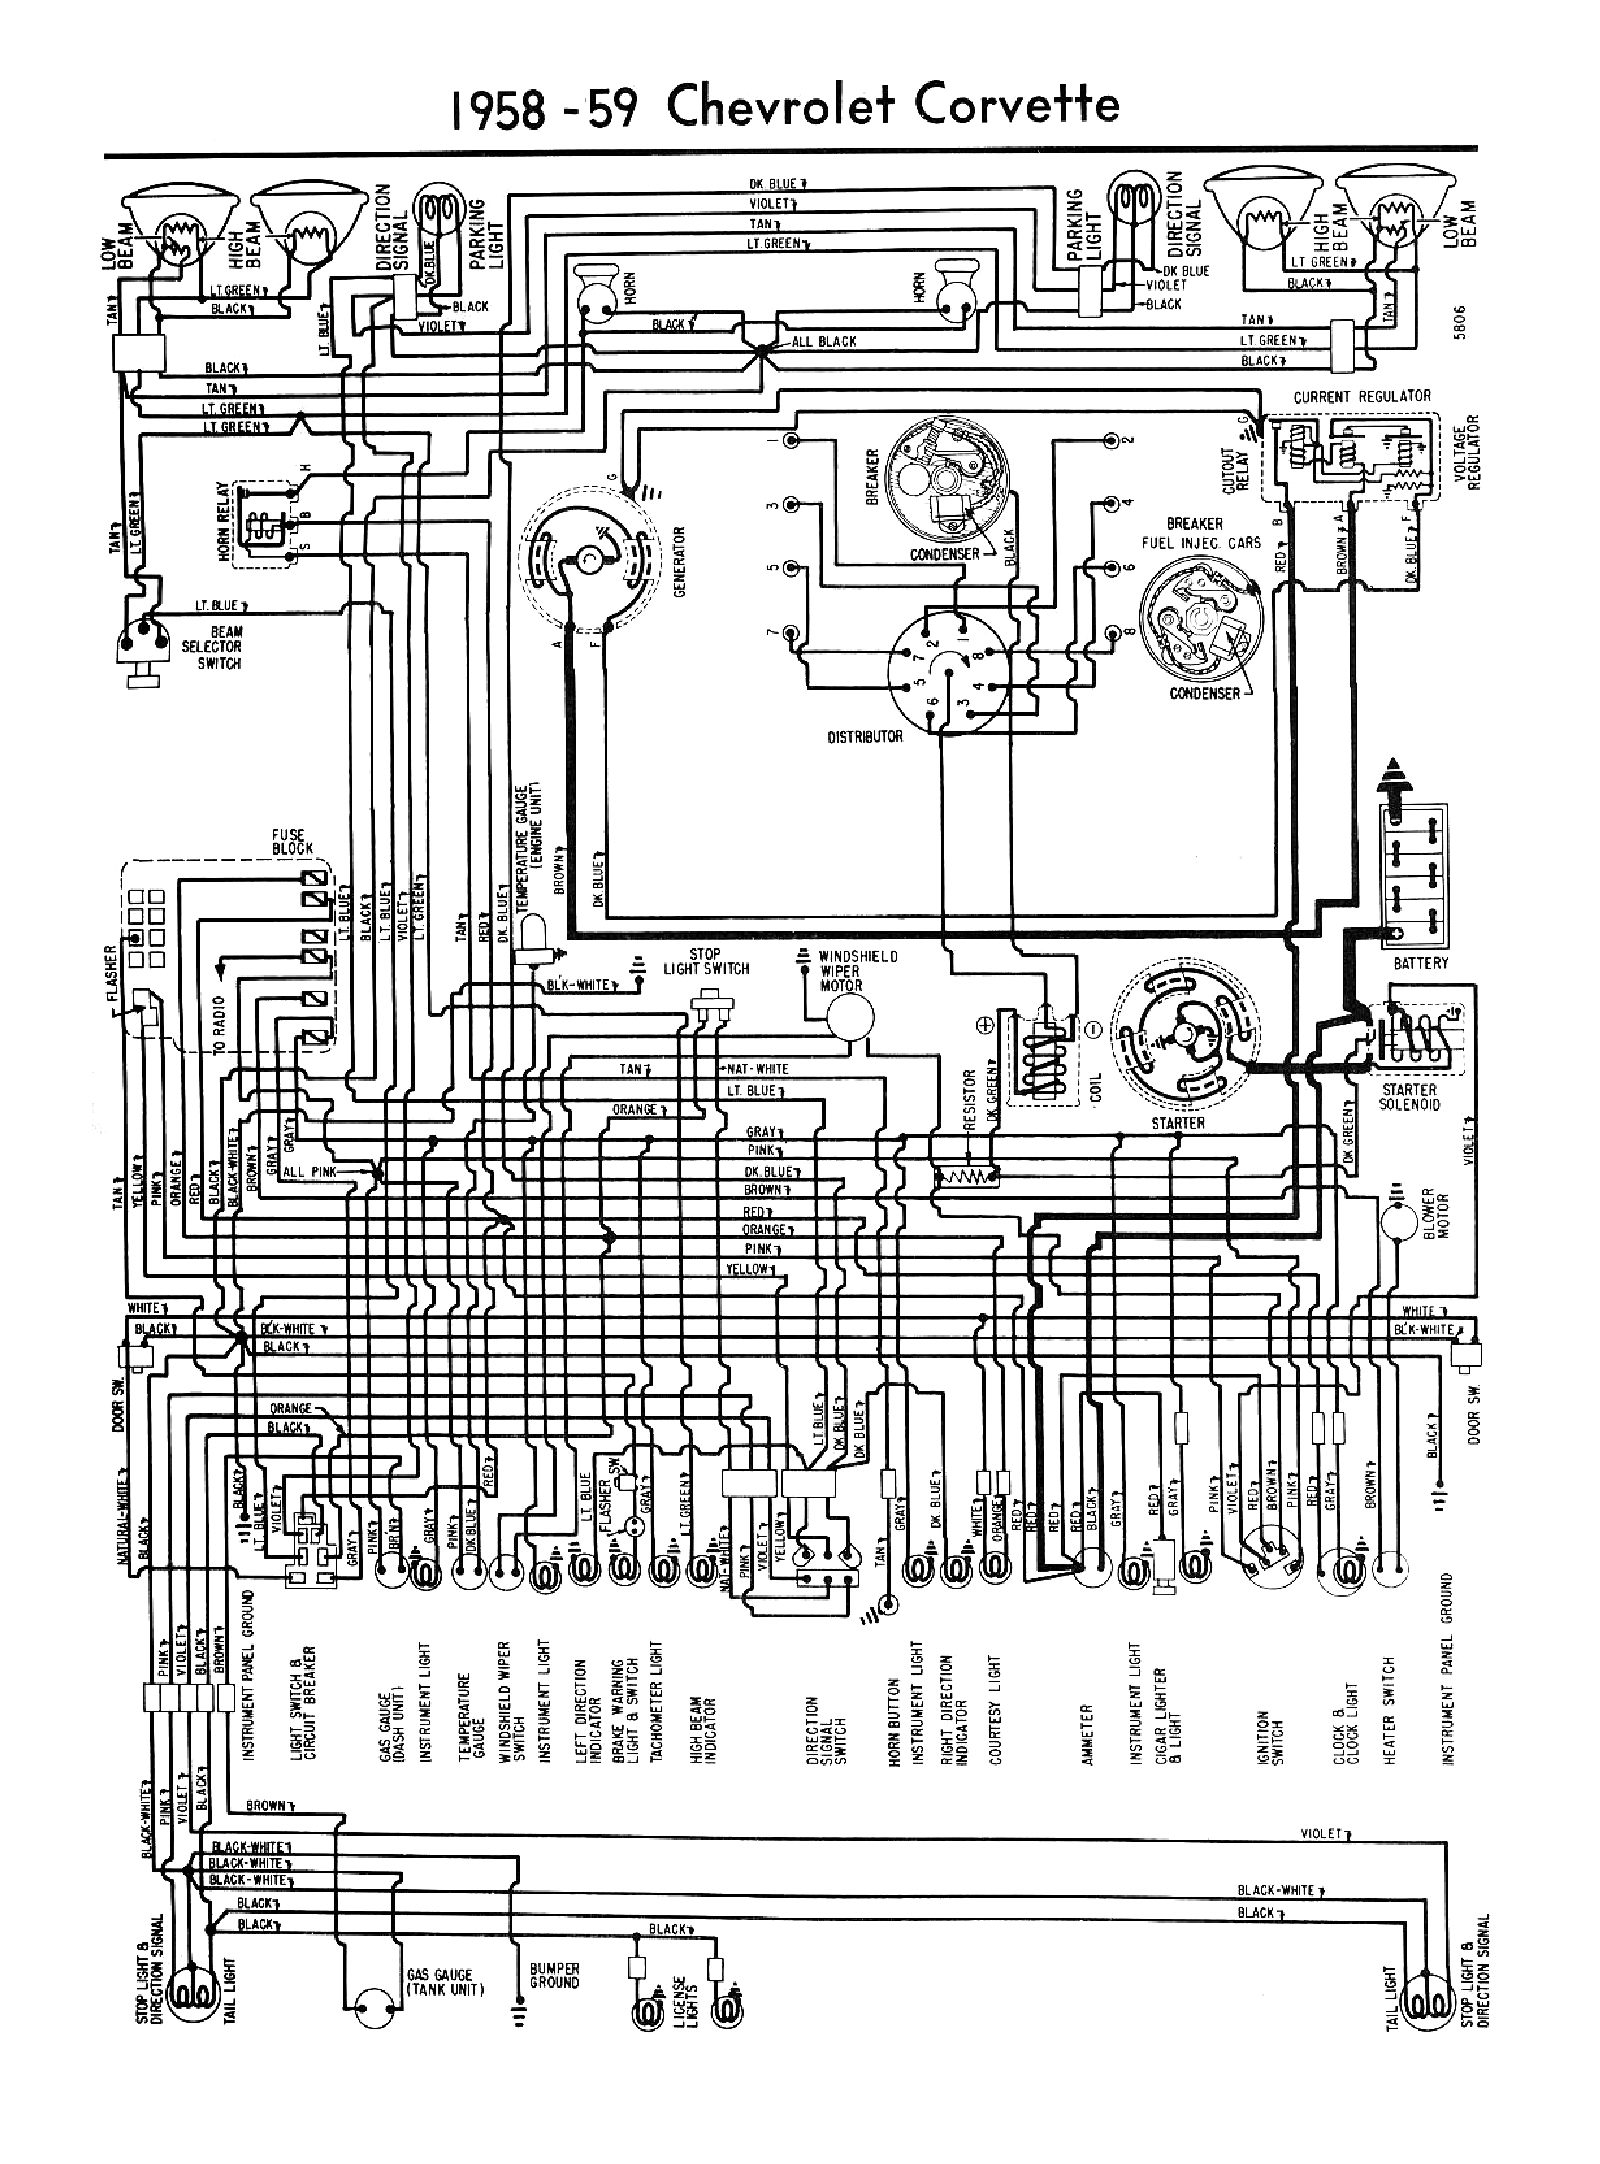 1958 Corvette Wiring Diagram Opinions About Wiring Diagram \u2022 1979  Corvette Vacuum Hose Schematic 1979 Corvette Wiring Schematic. Source. fuse  box ...